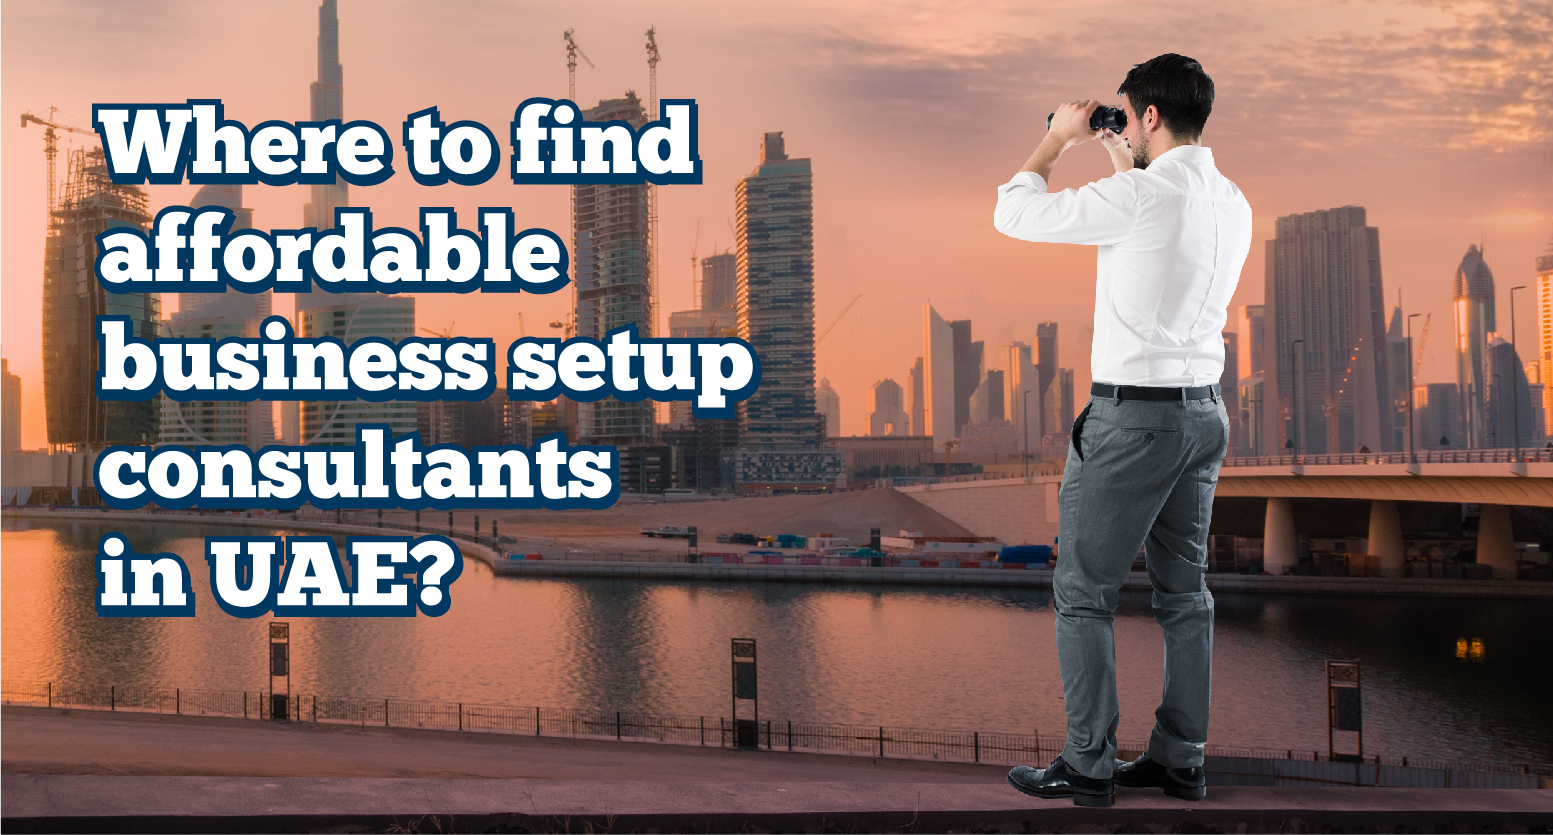 Where to find affordable business setup consultants in UAE?